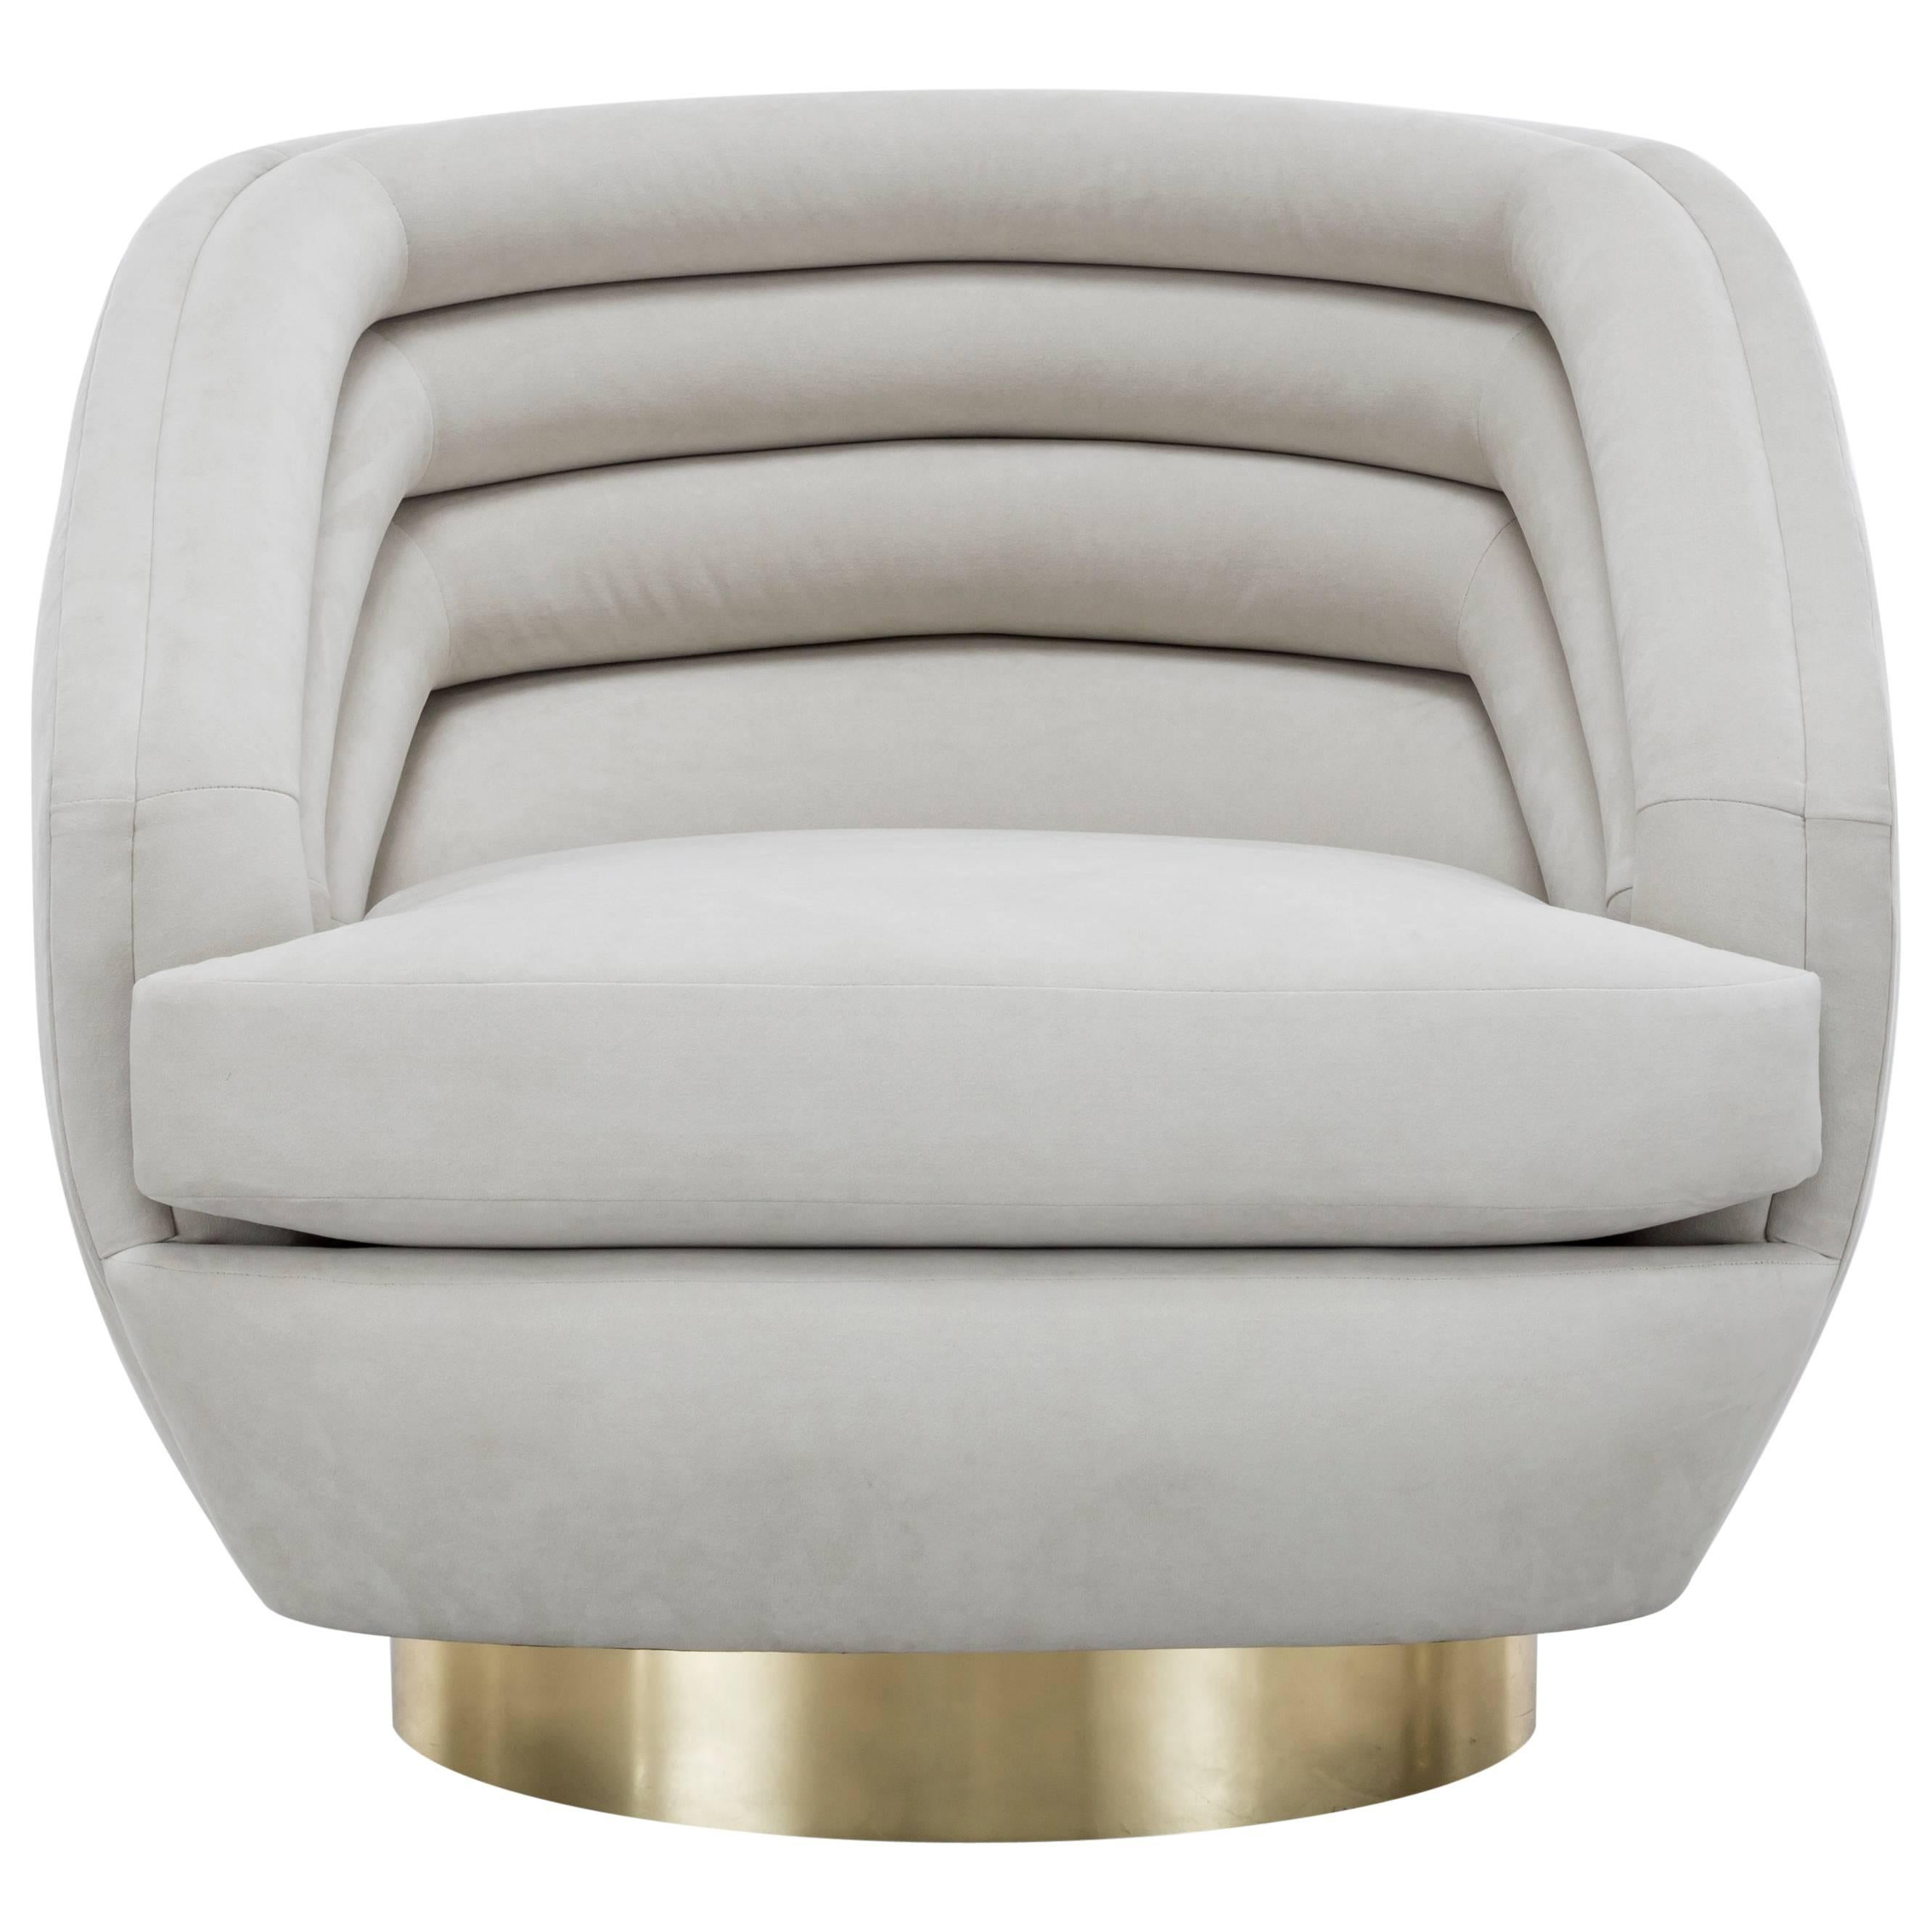 RAOUL SWIVEL CHAIR LARGE - Modern Ultra Suede Swivel Chair with Brass Base